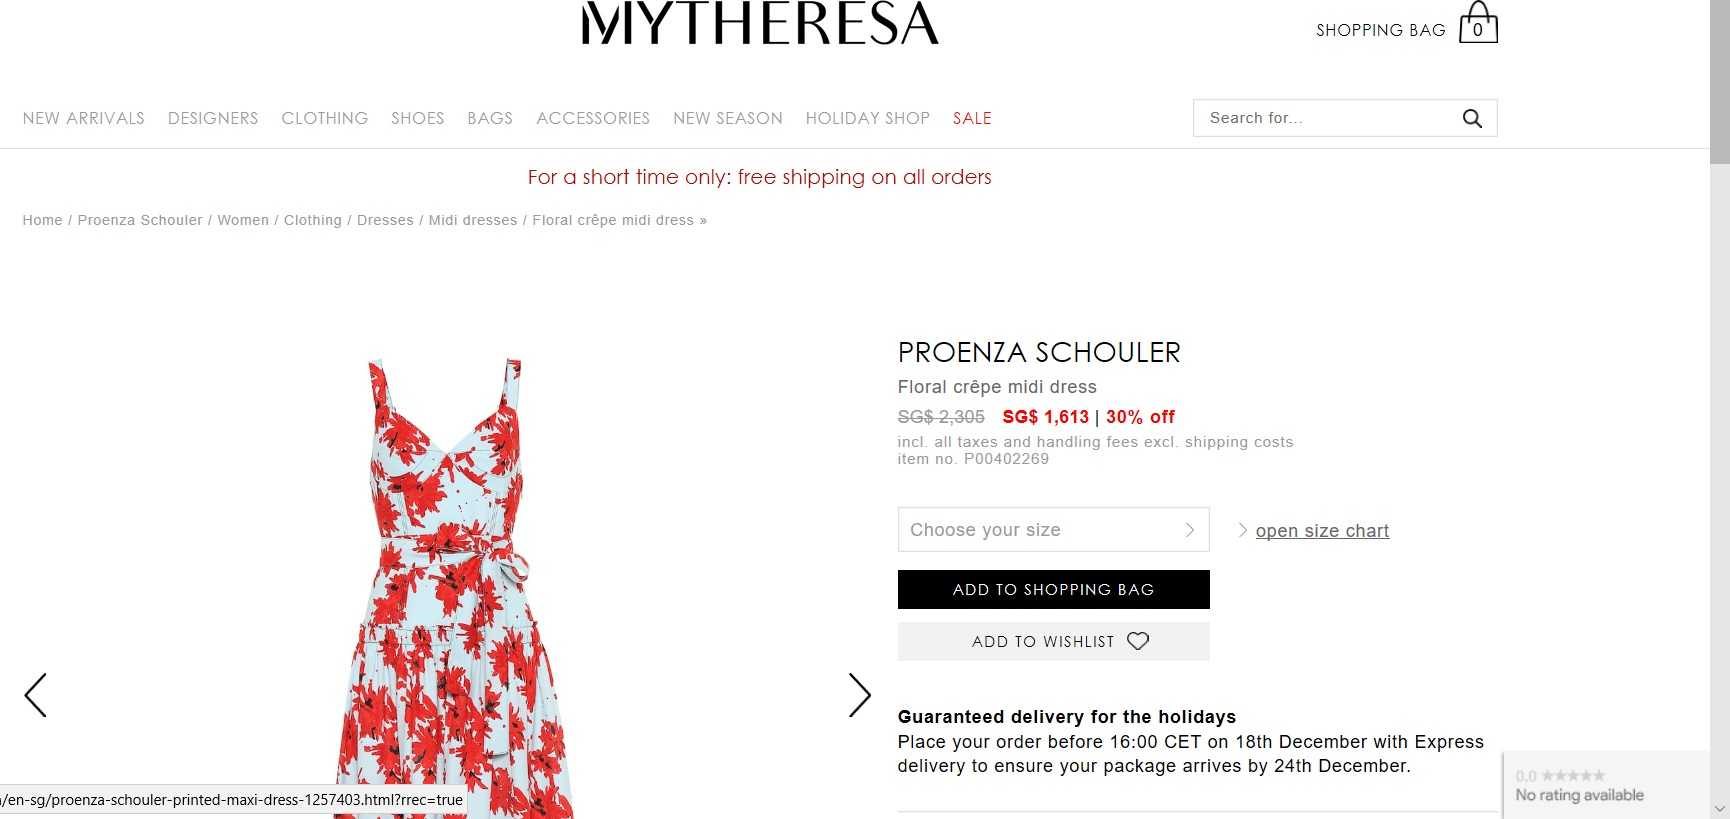 Product page for a floral crepe midi dress.